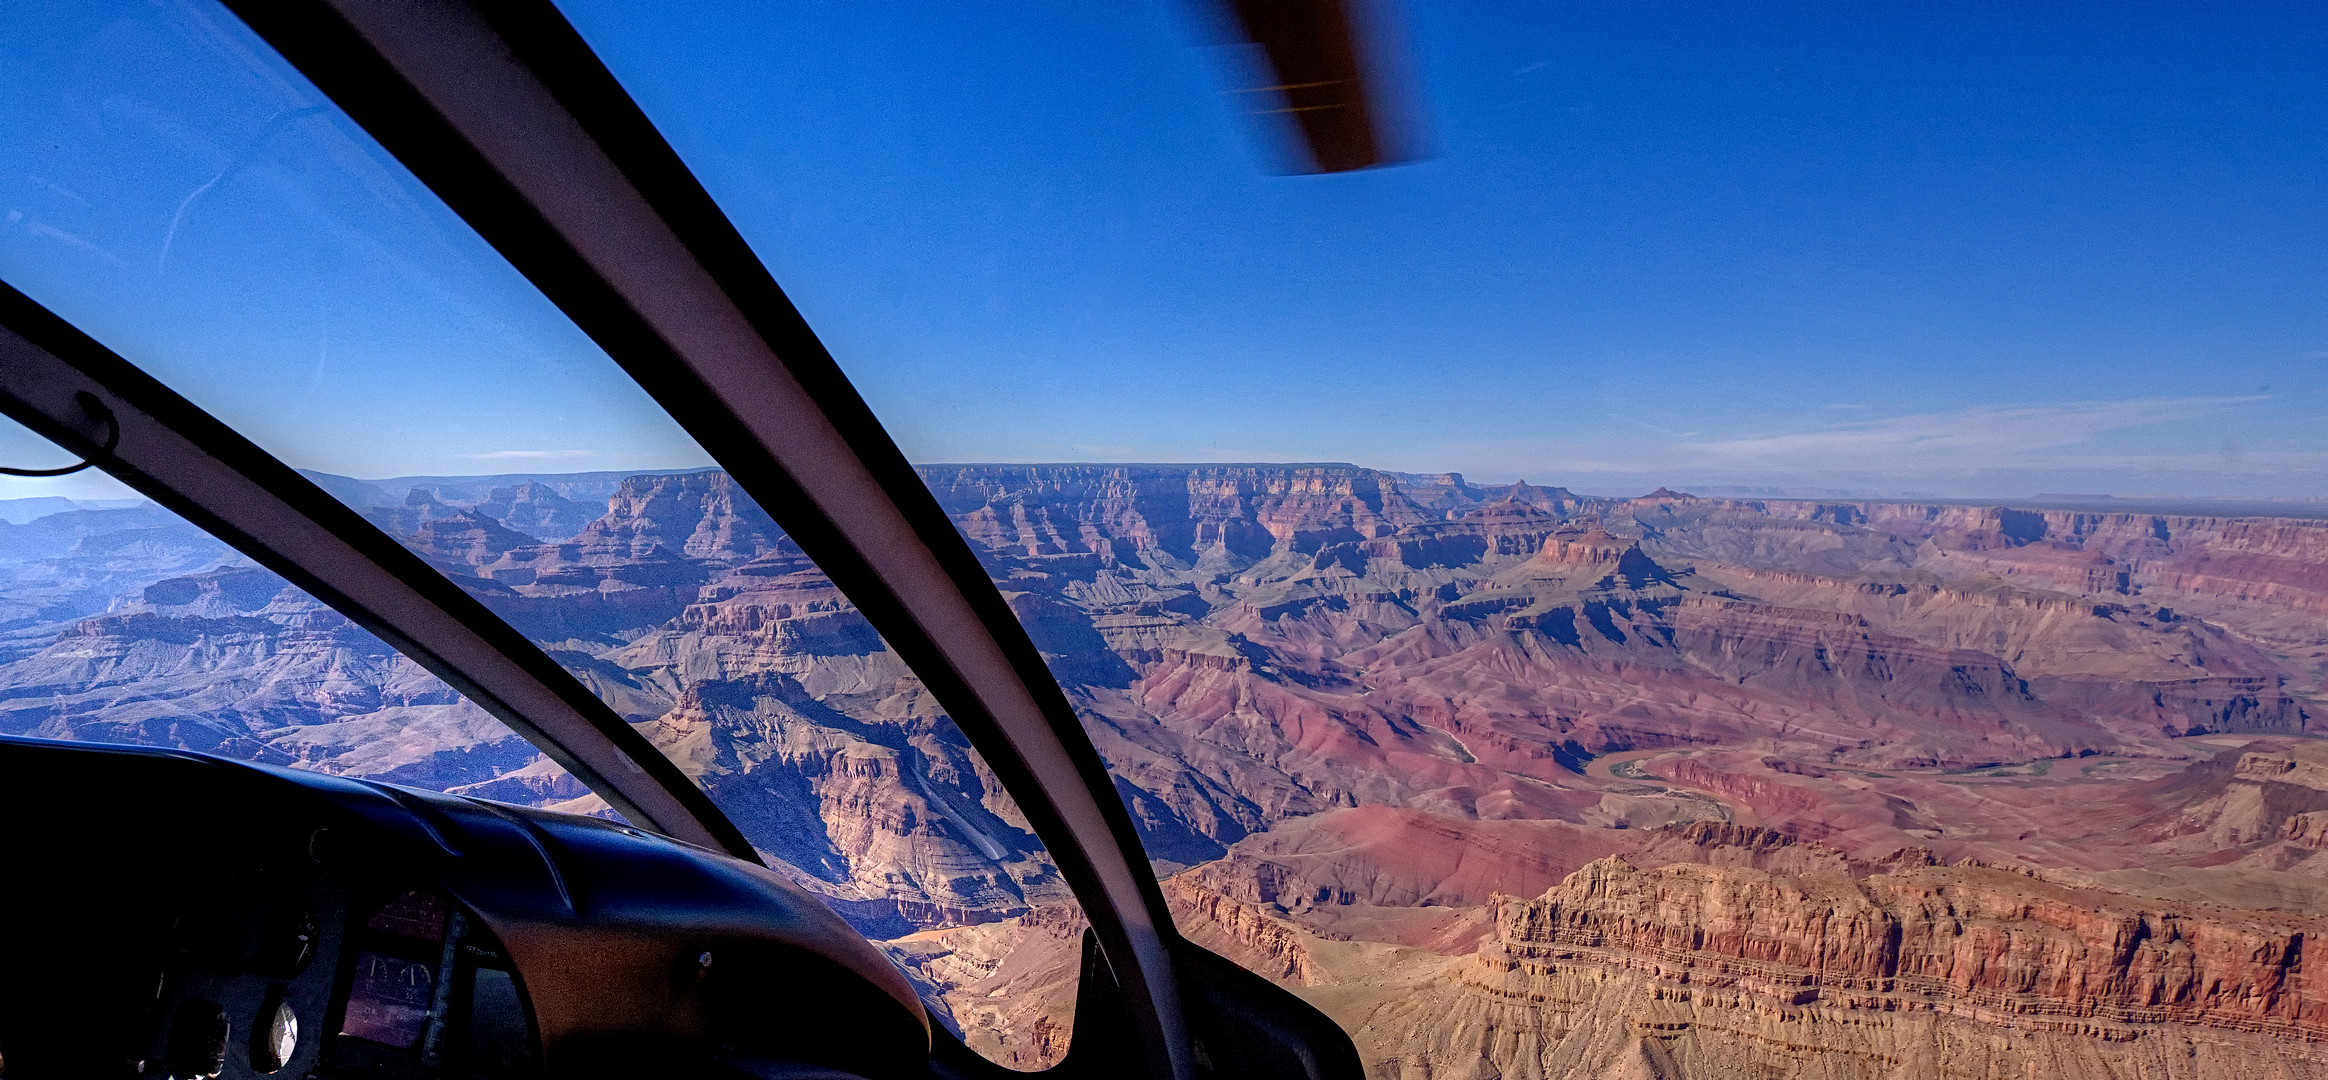 Helo over the Grand Canyon